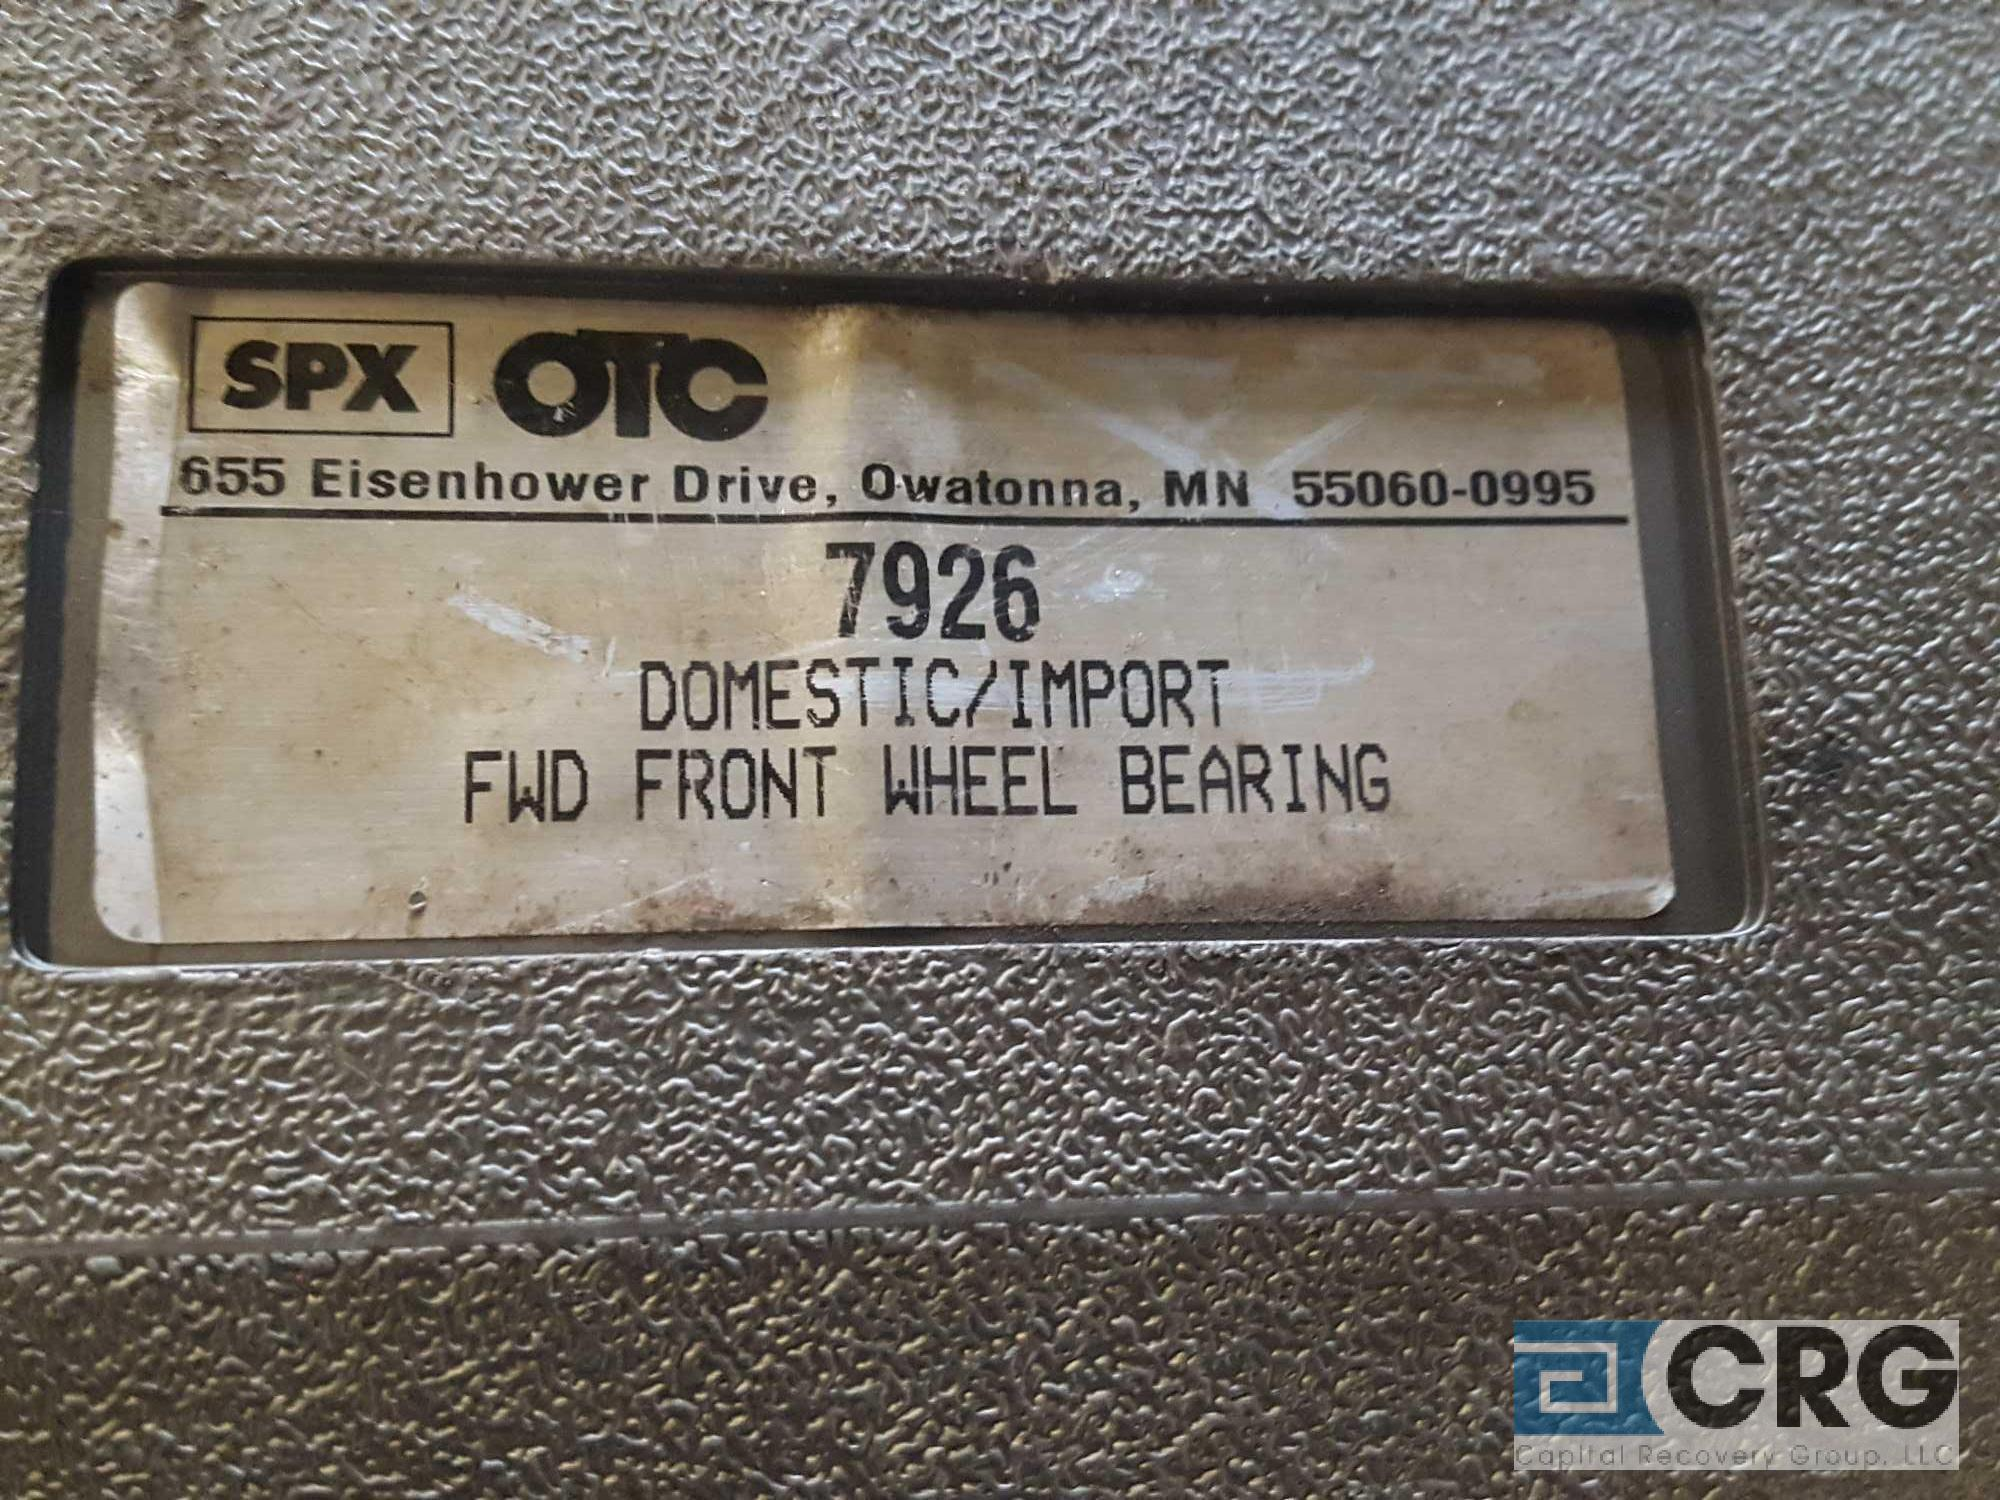 Lot of assorted tooling including (1) SPX OTC 7926 domestic/import FWD front wheel bearing kit, ( - Image 3 of 5